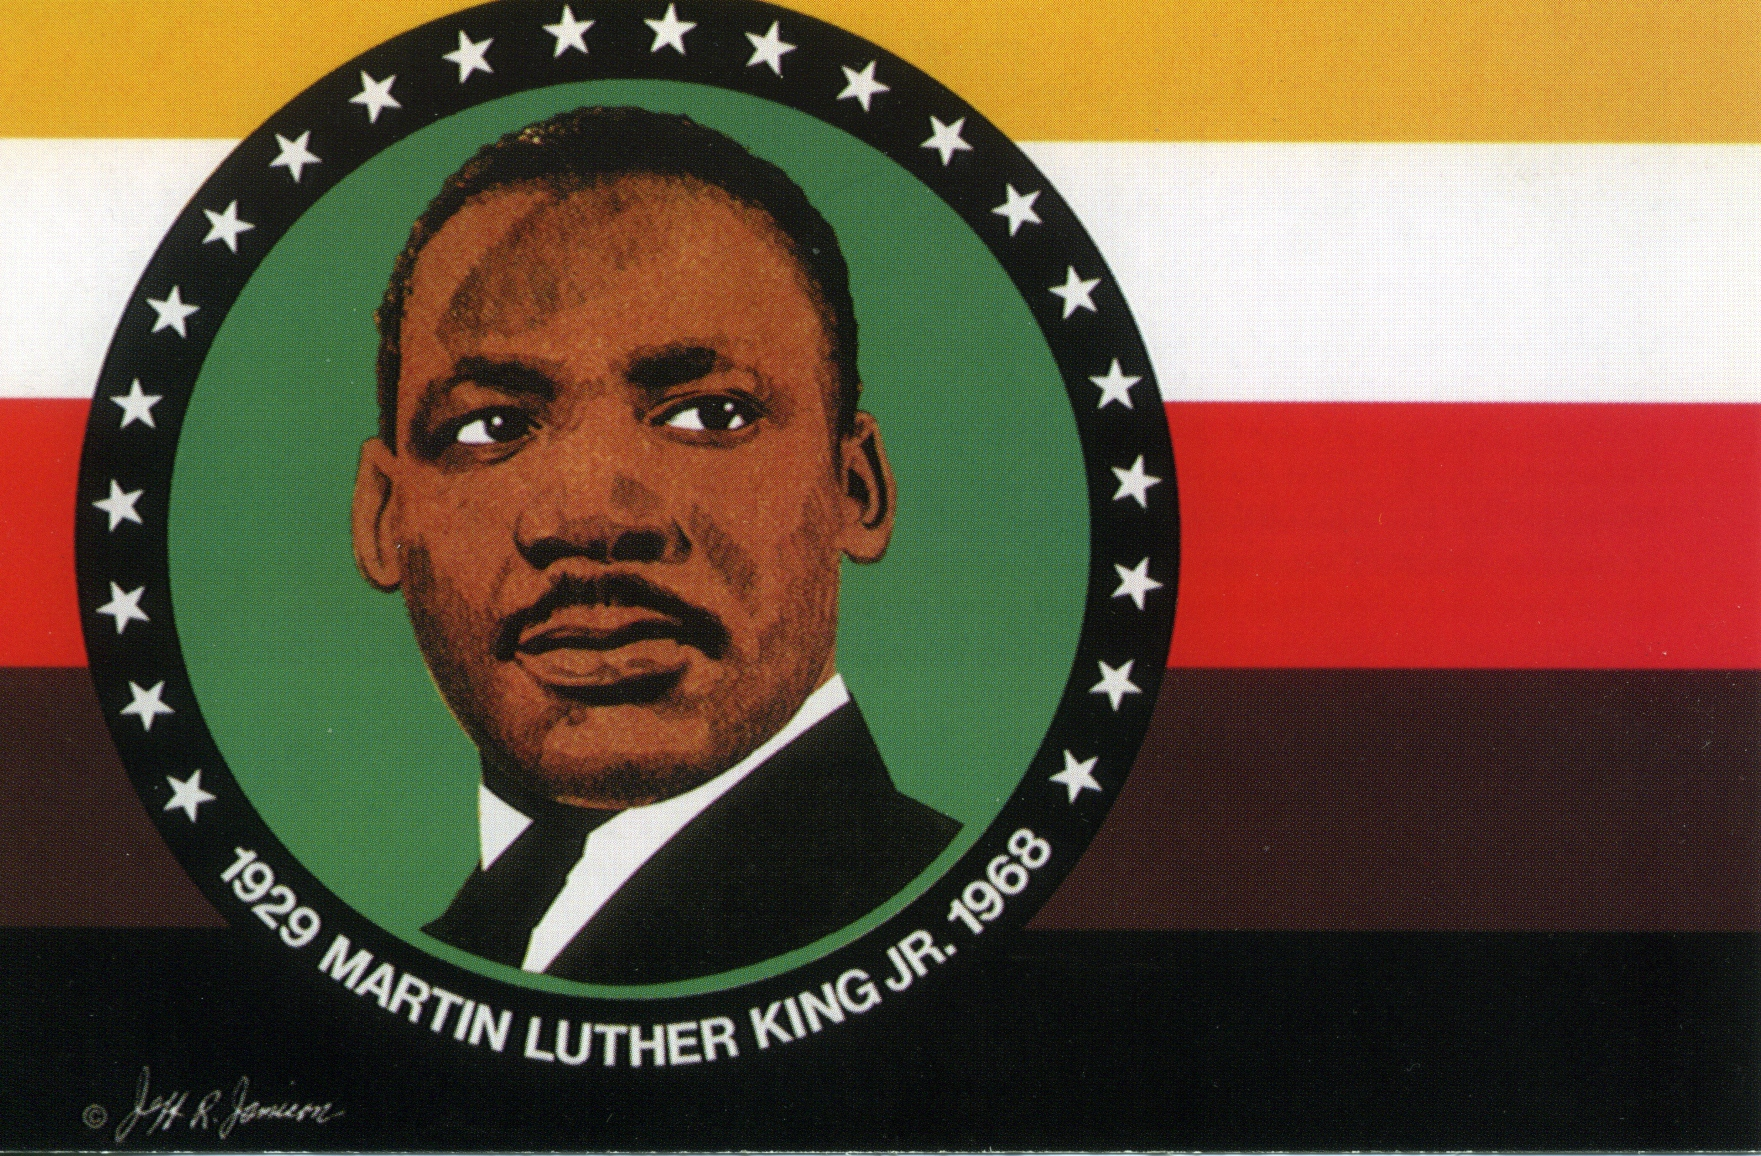 Mayor Nutter, Councilwoman Blackwell to Raise Flag at Drexel Honoring Martin Luther King Jr.